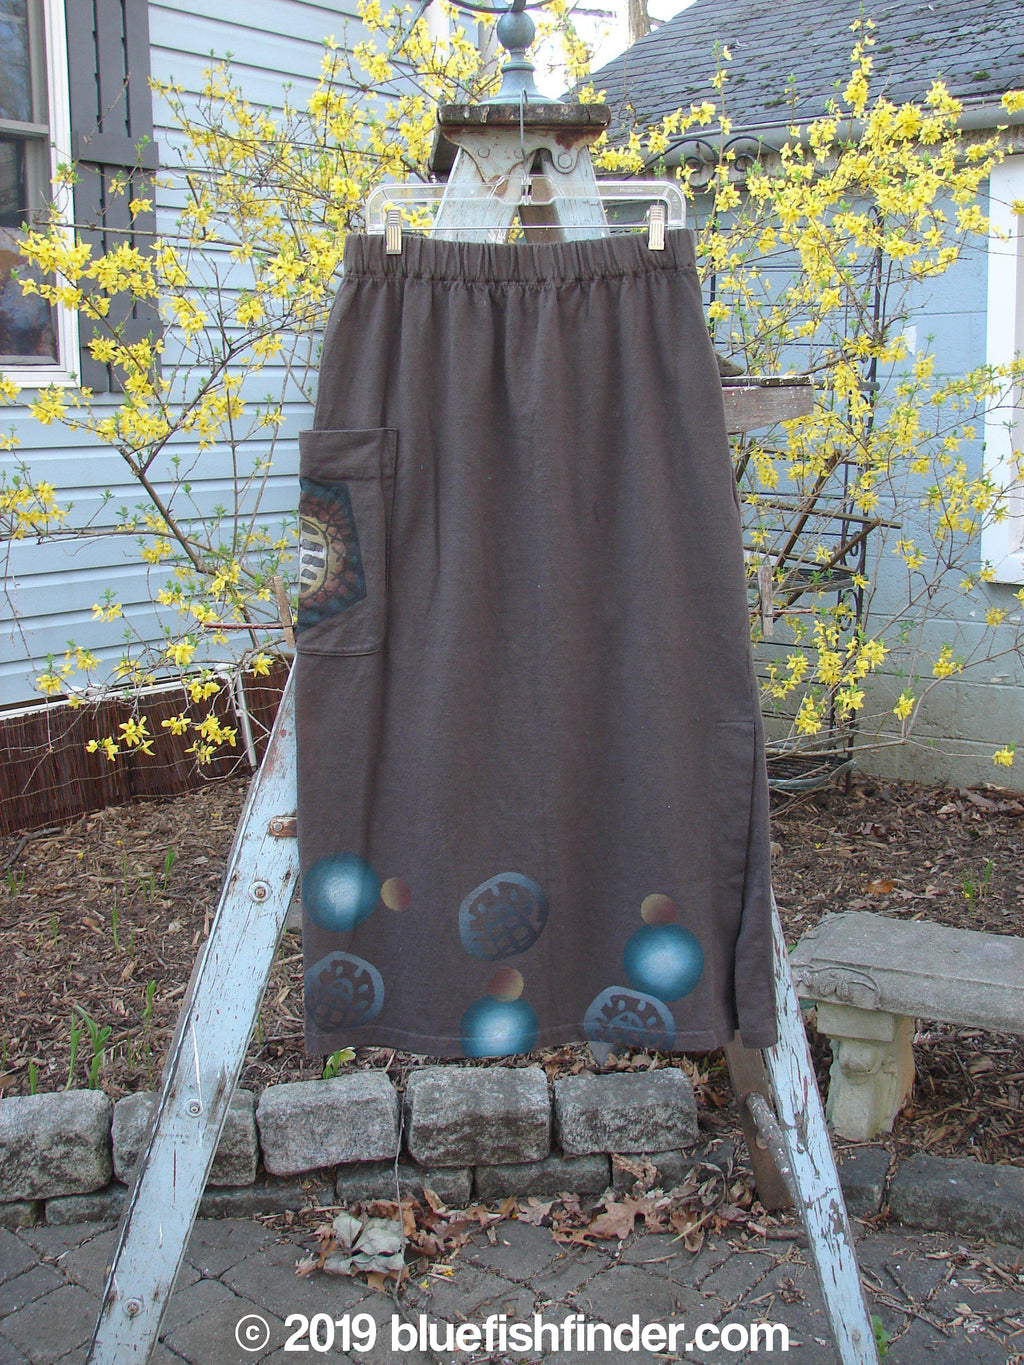 Vintage Blue Fish Clothing 1996 Big Pocket Skirt Moon Molasses Size 1- Bluefishfinder.com